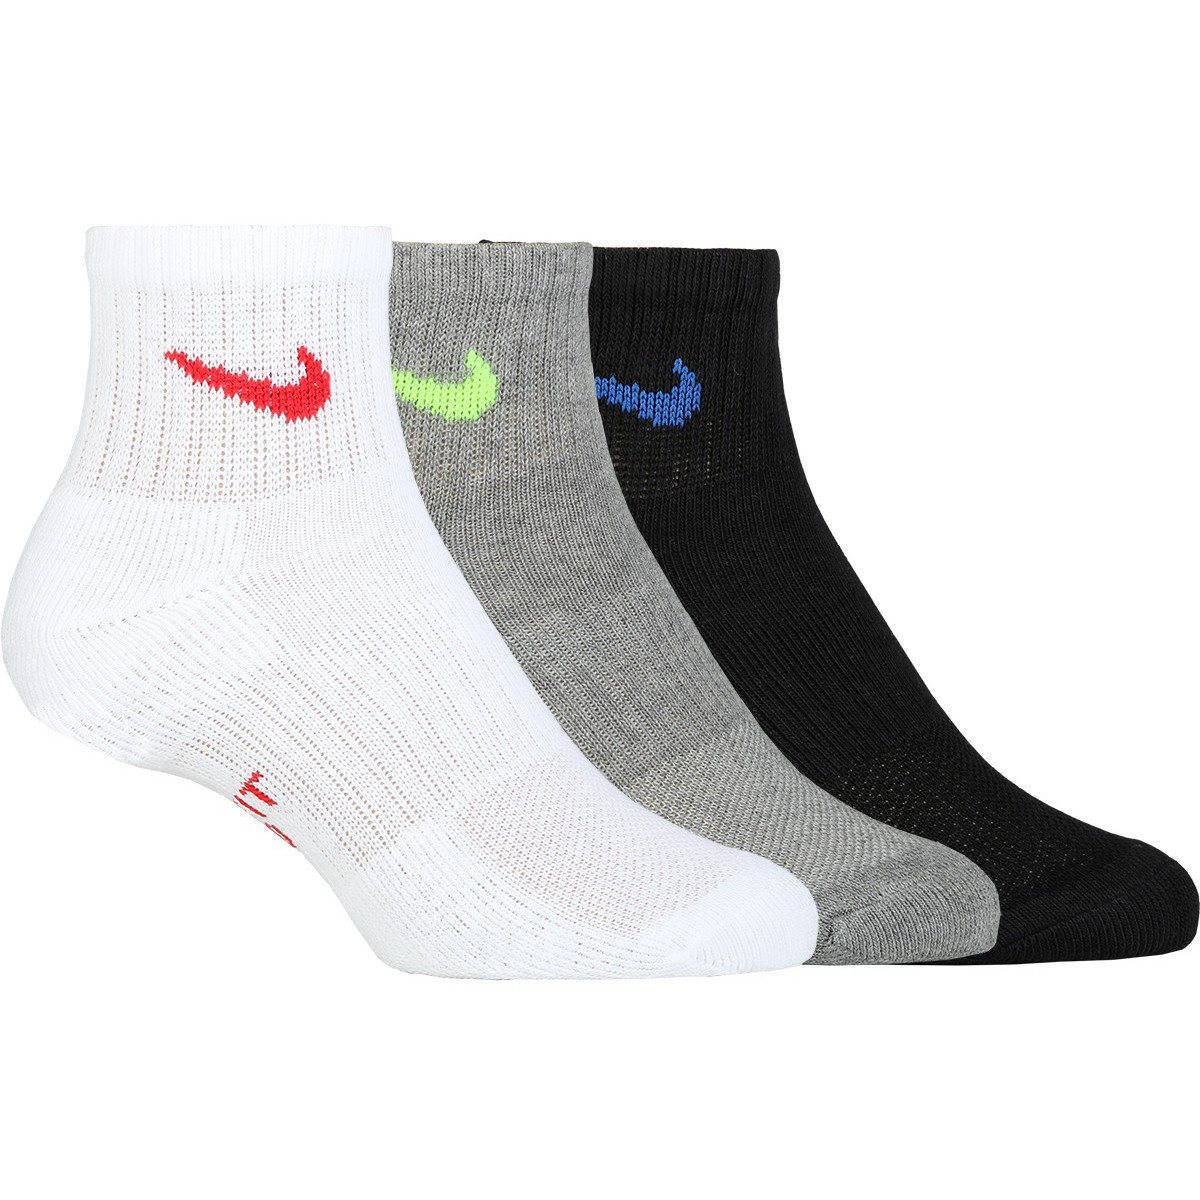 Носки теннисные NIKE 3PR Y EVERYDAY CUSH ANKLE 2021